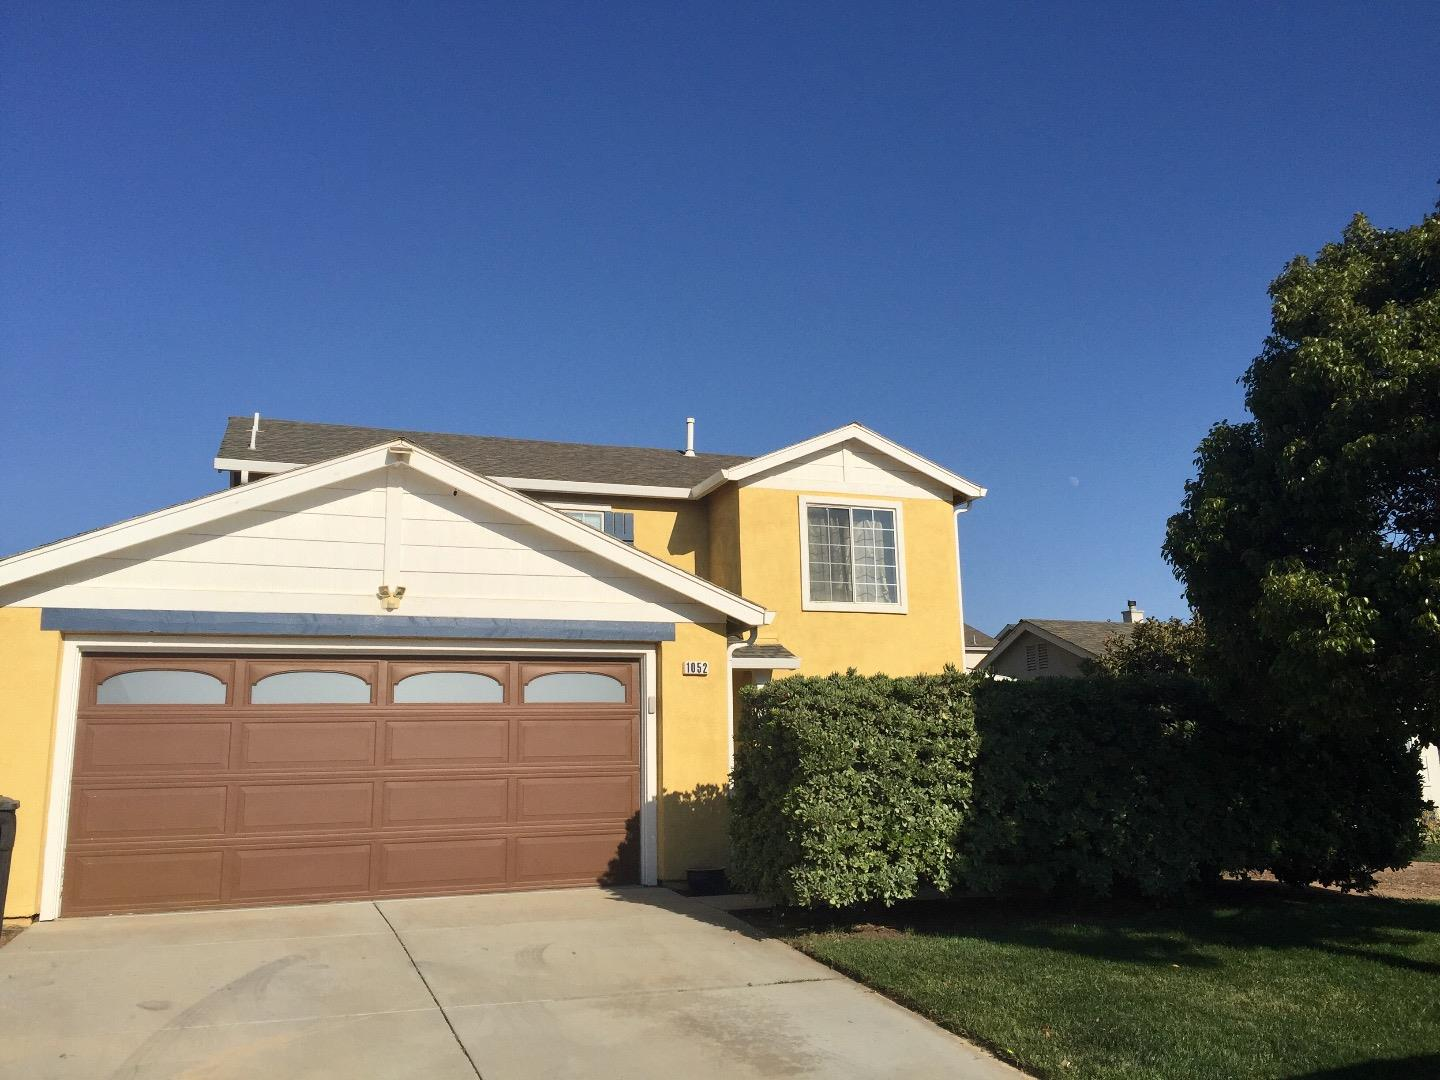 Single Family Home for Sale at 1052 Madrid Soledad, California 93960 United States